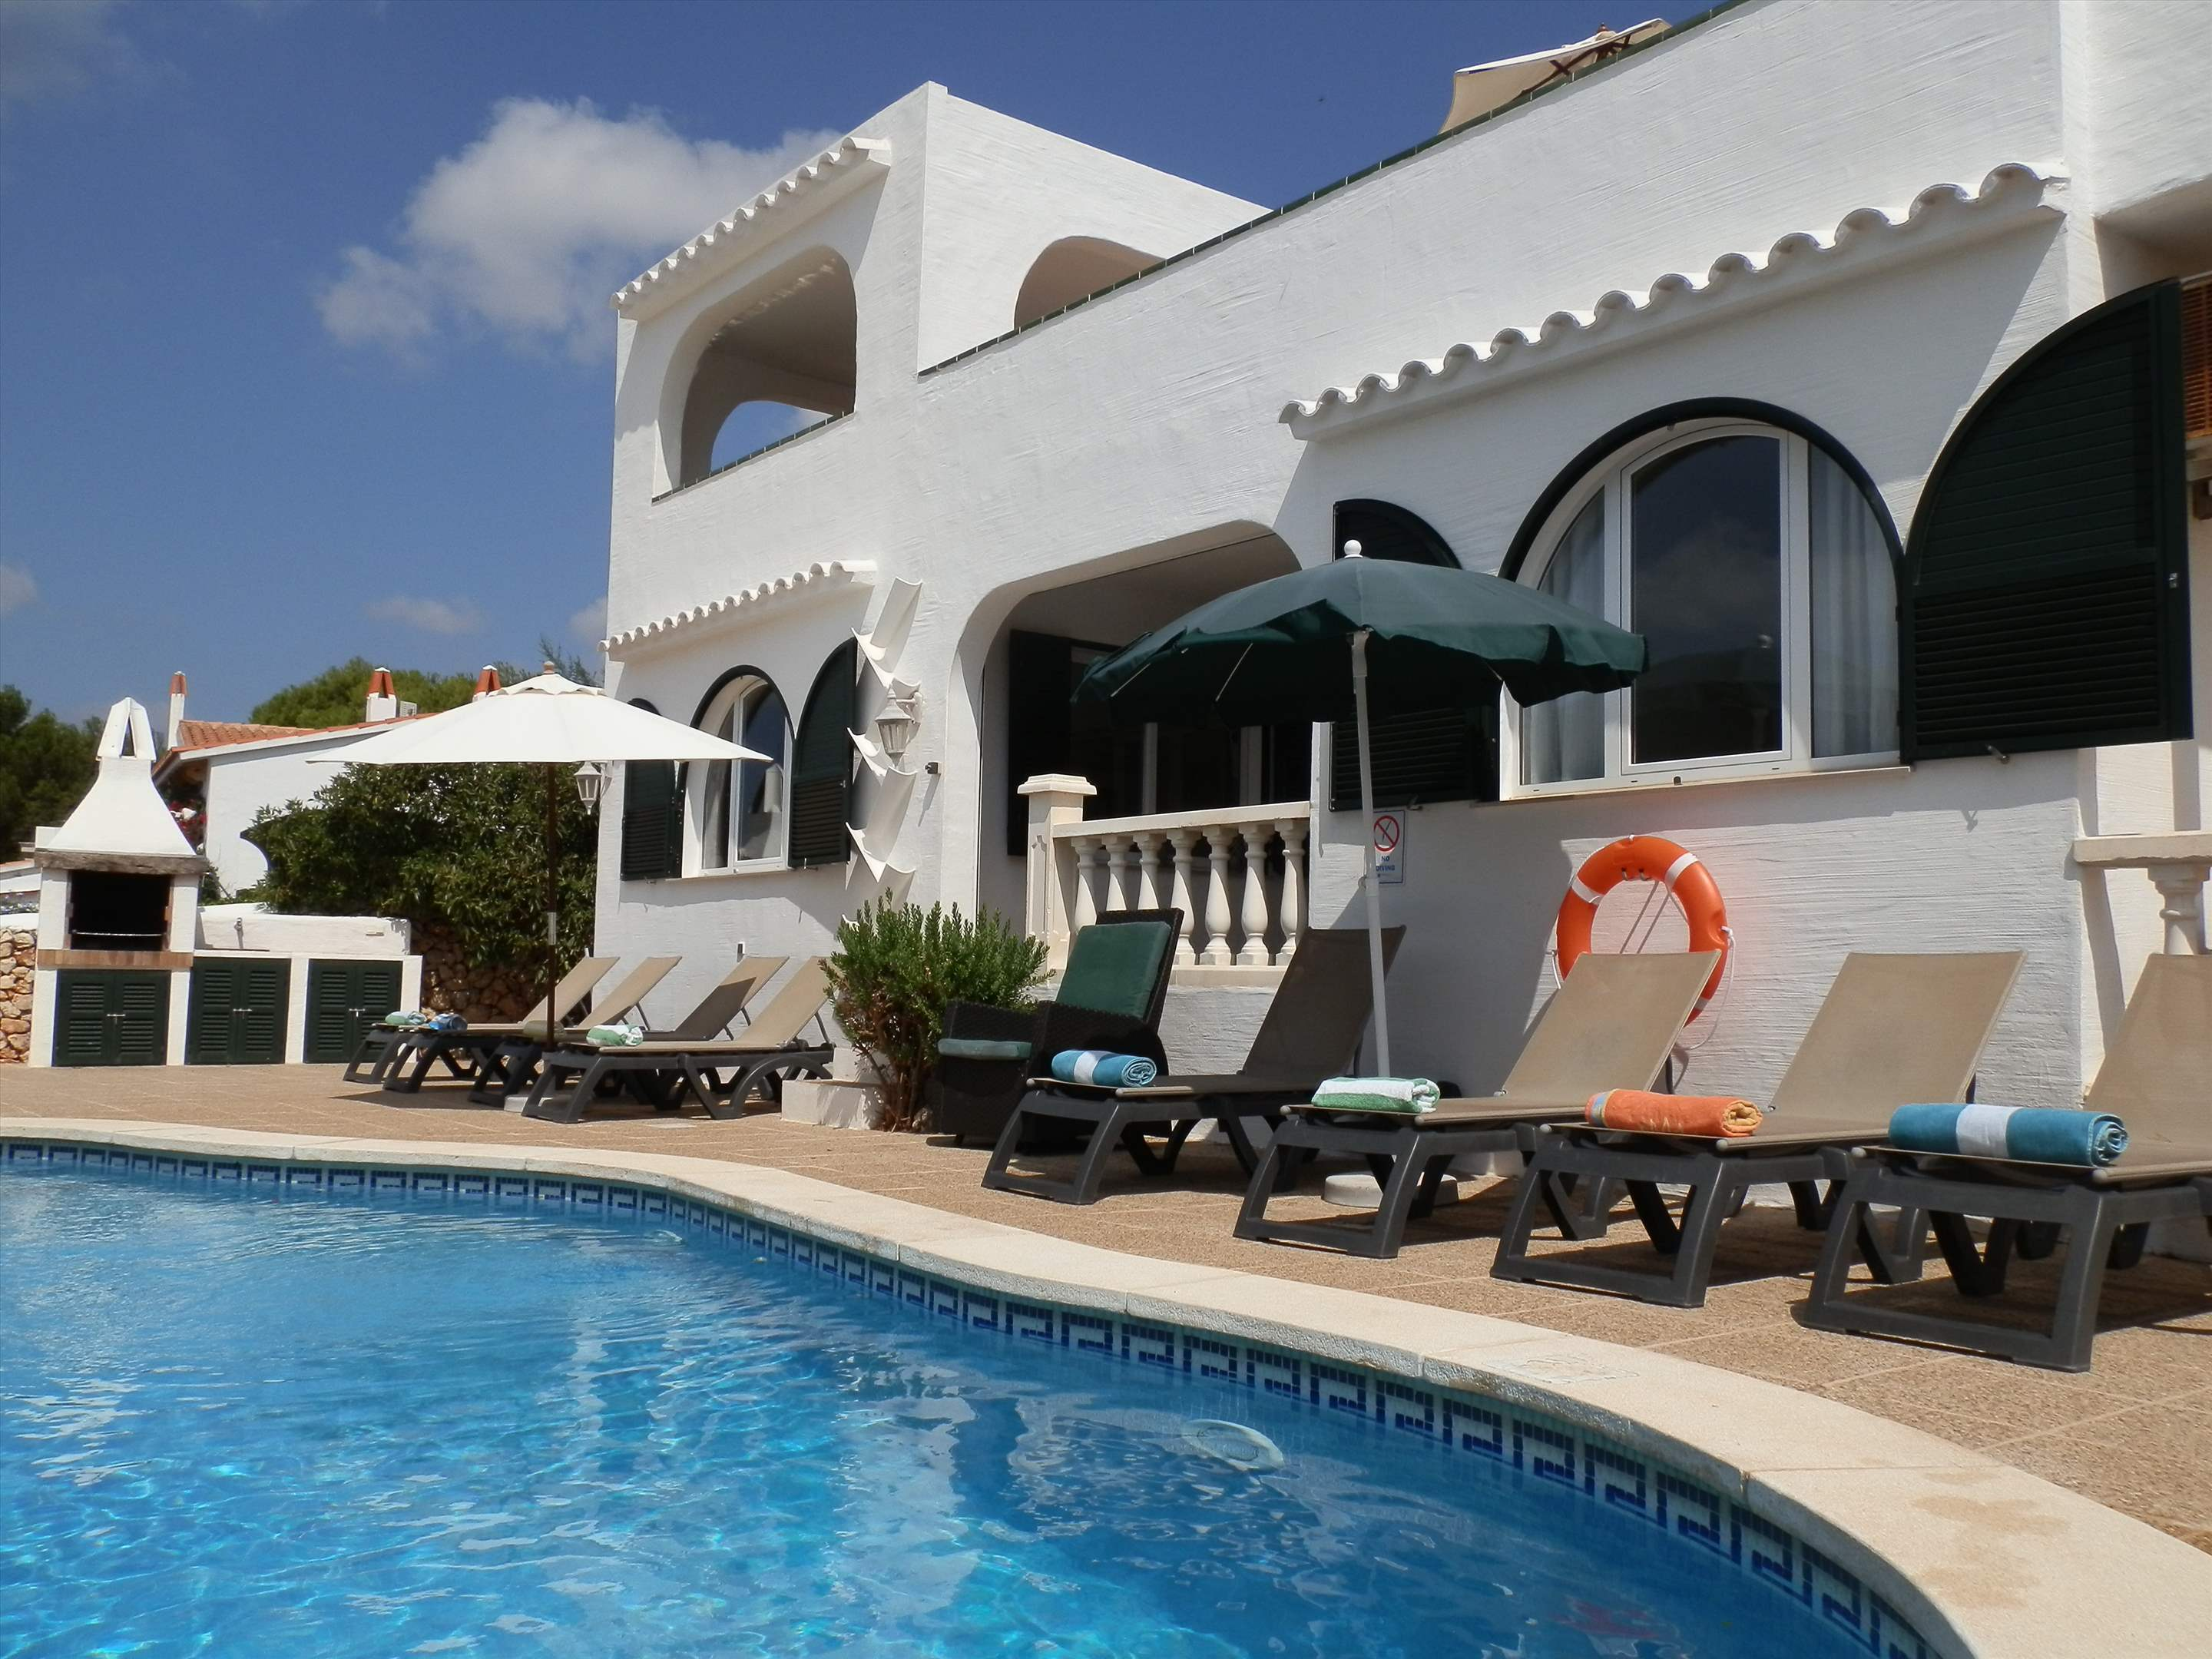 Villa La Palmera, 4 bedroom villa in Mahon, San Luis & South East, Menorca Photo #1